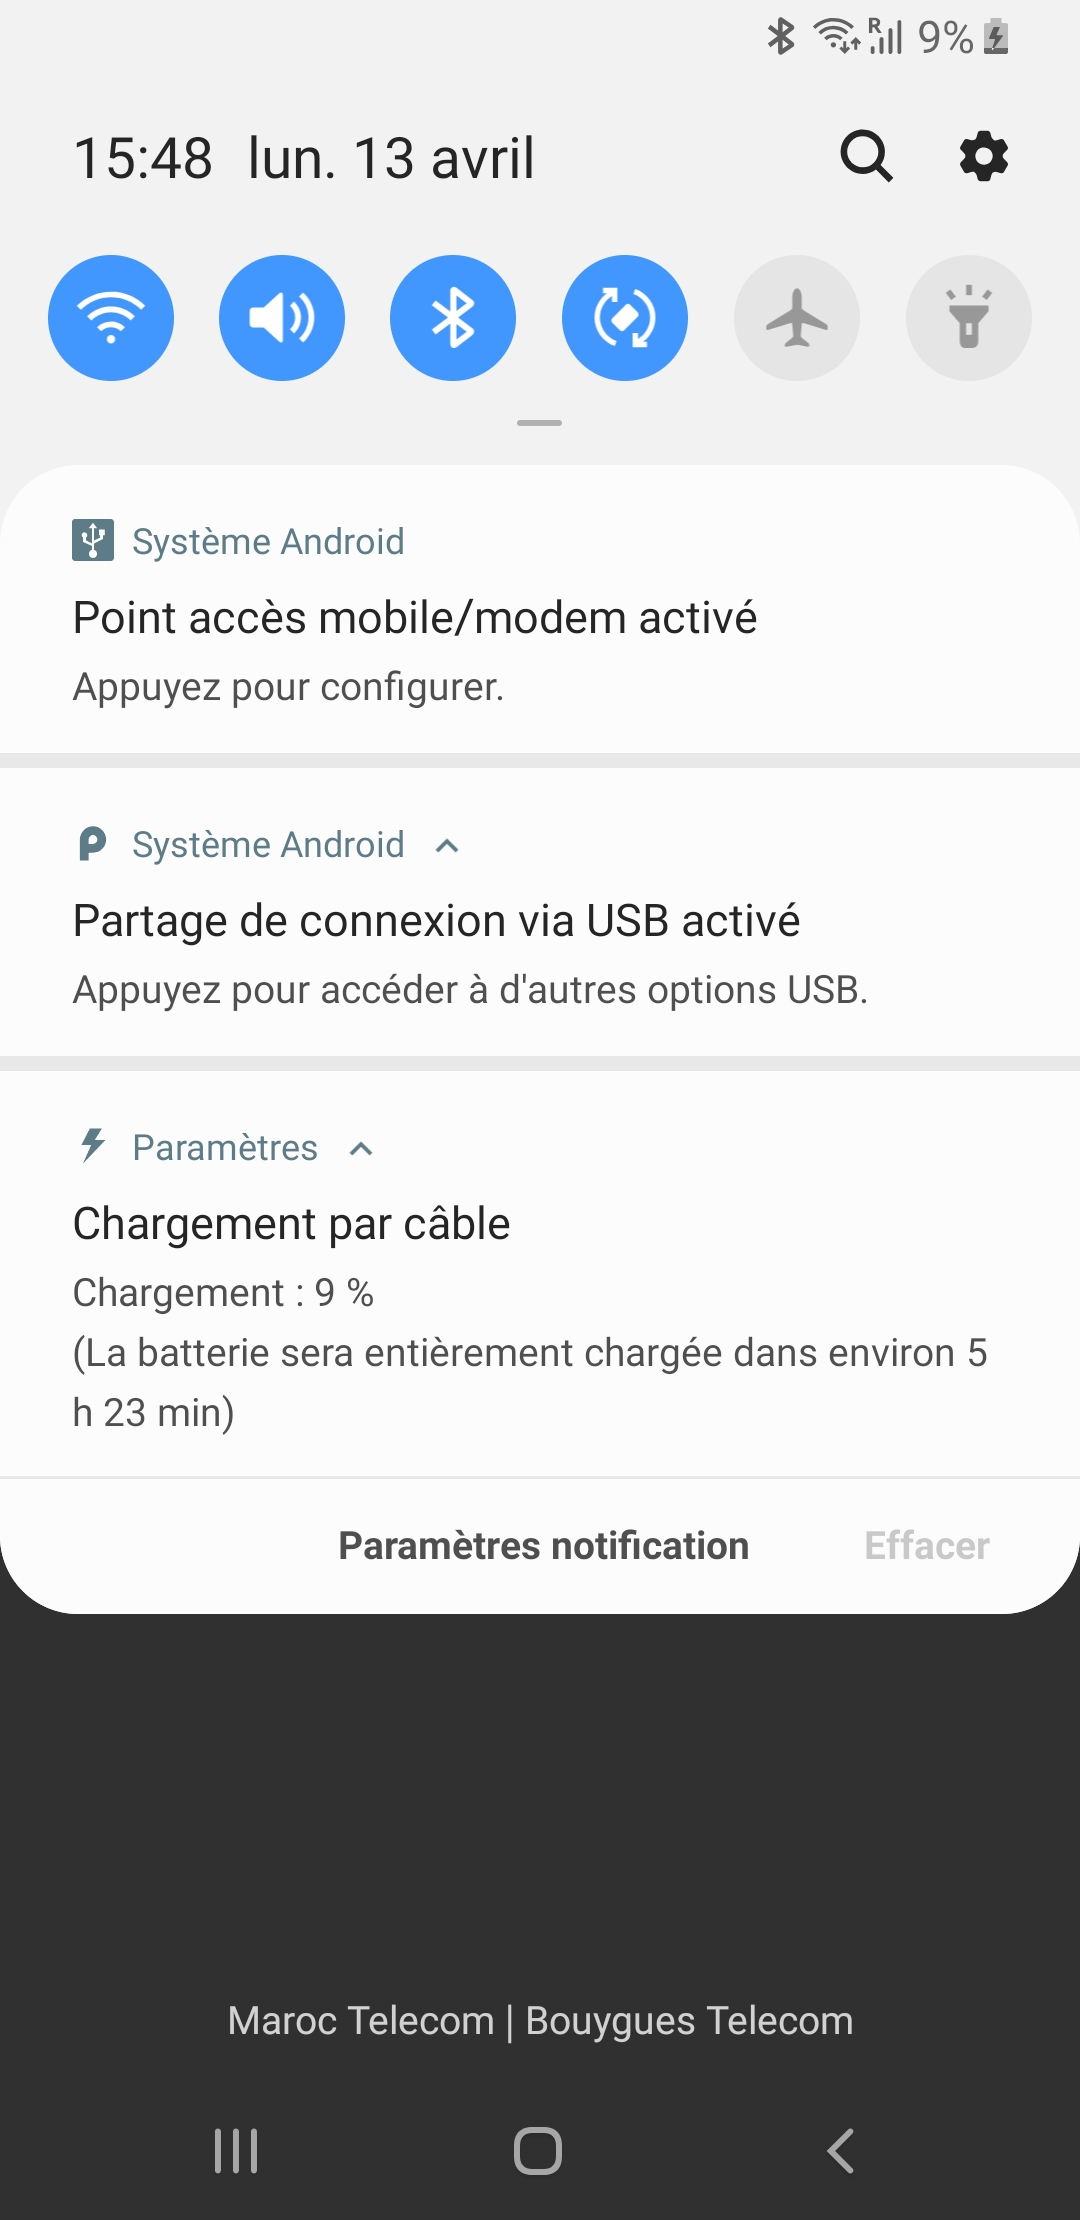 partage-connexion-usb-options-android